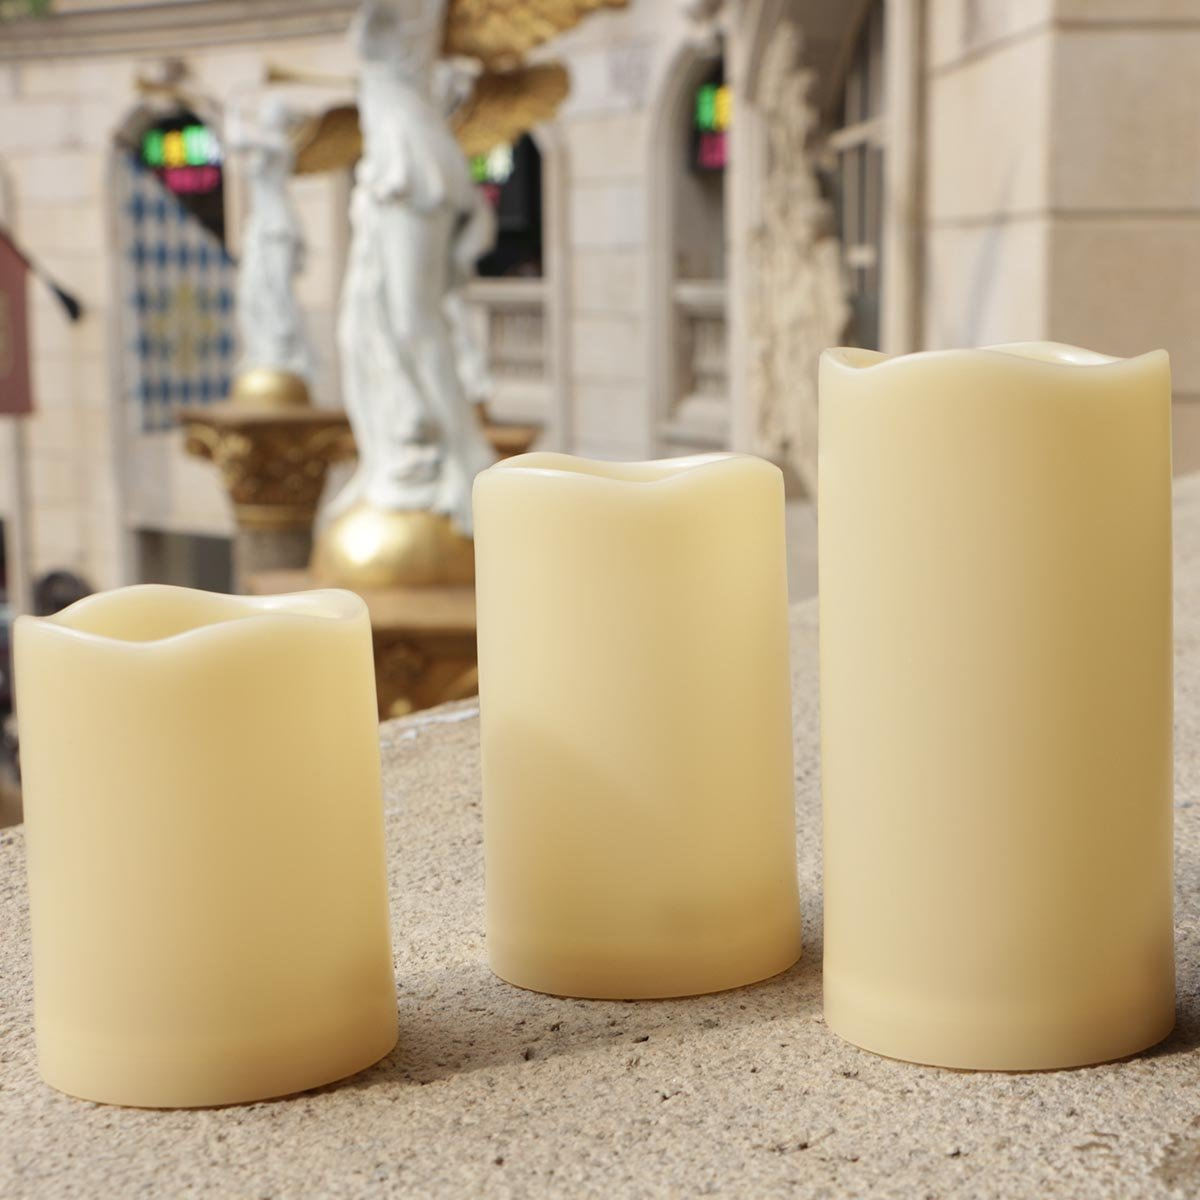 Outdoor Flameless Pillar Candles Set of 3,Waterproof Realistic Flickering Led Battery Operated Electric Candles with Timer 3''(4'',5'',6'')